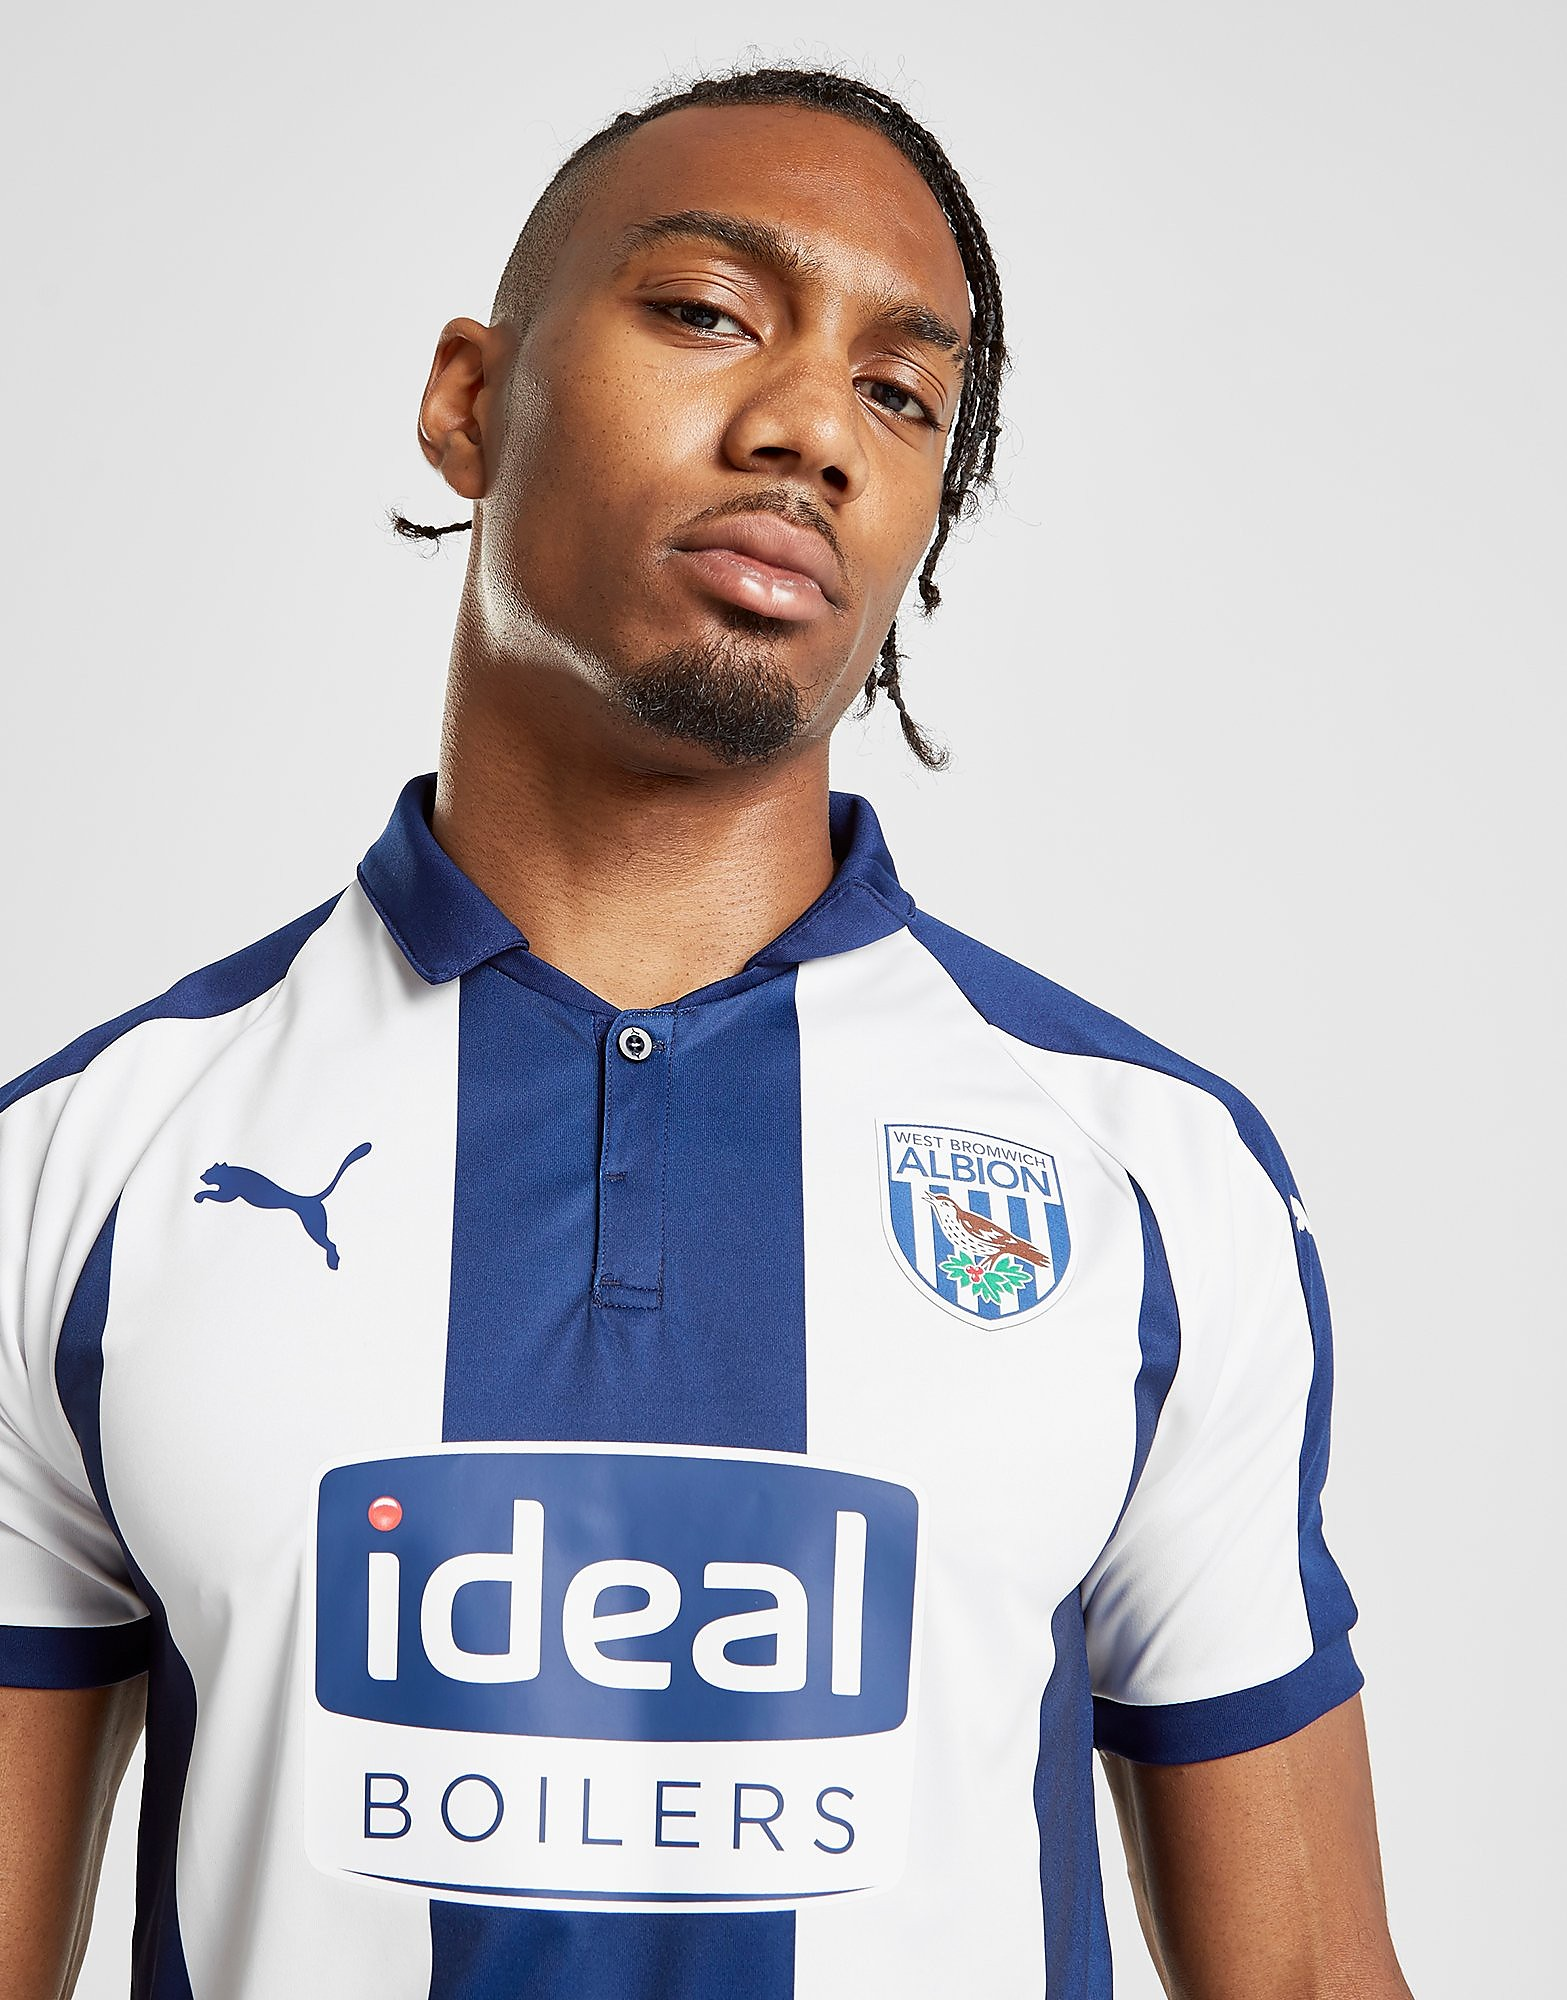 PUMA West Bromwich Albion FC 2018/19 Home Shirt - Wit - Heren